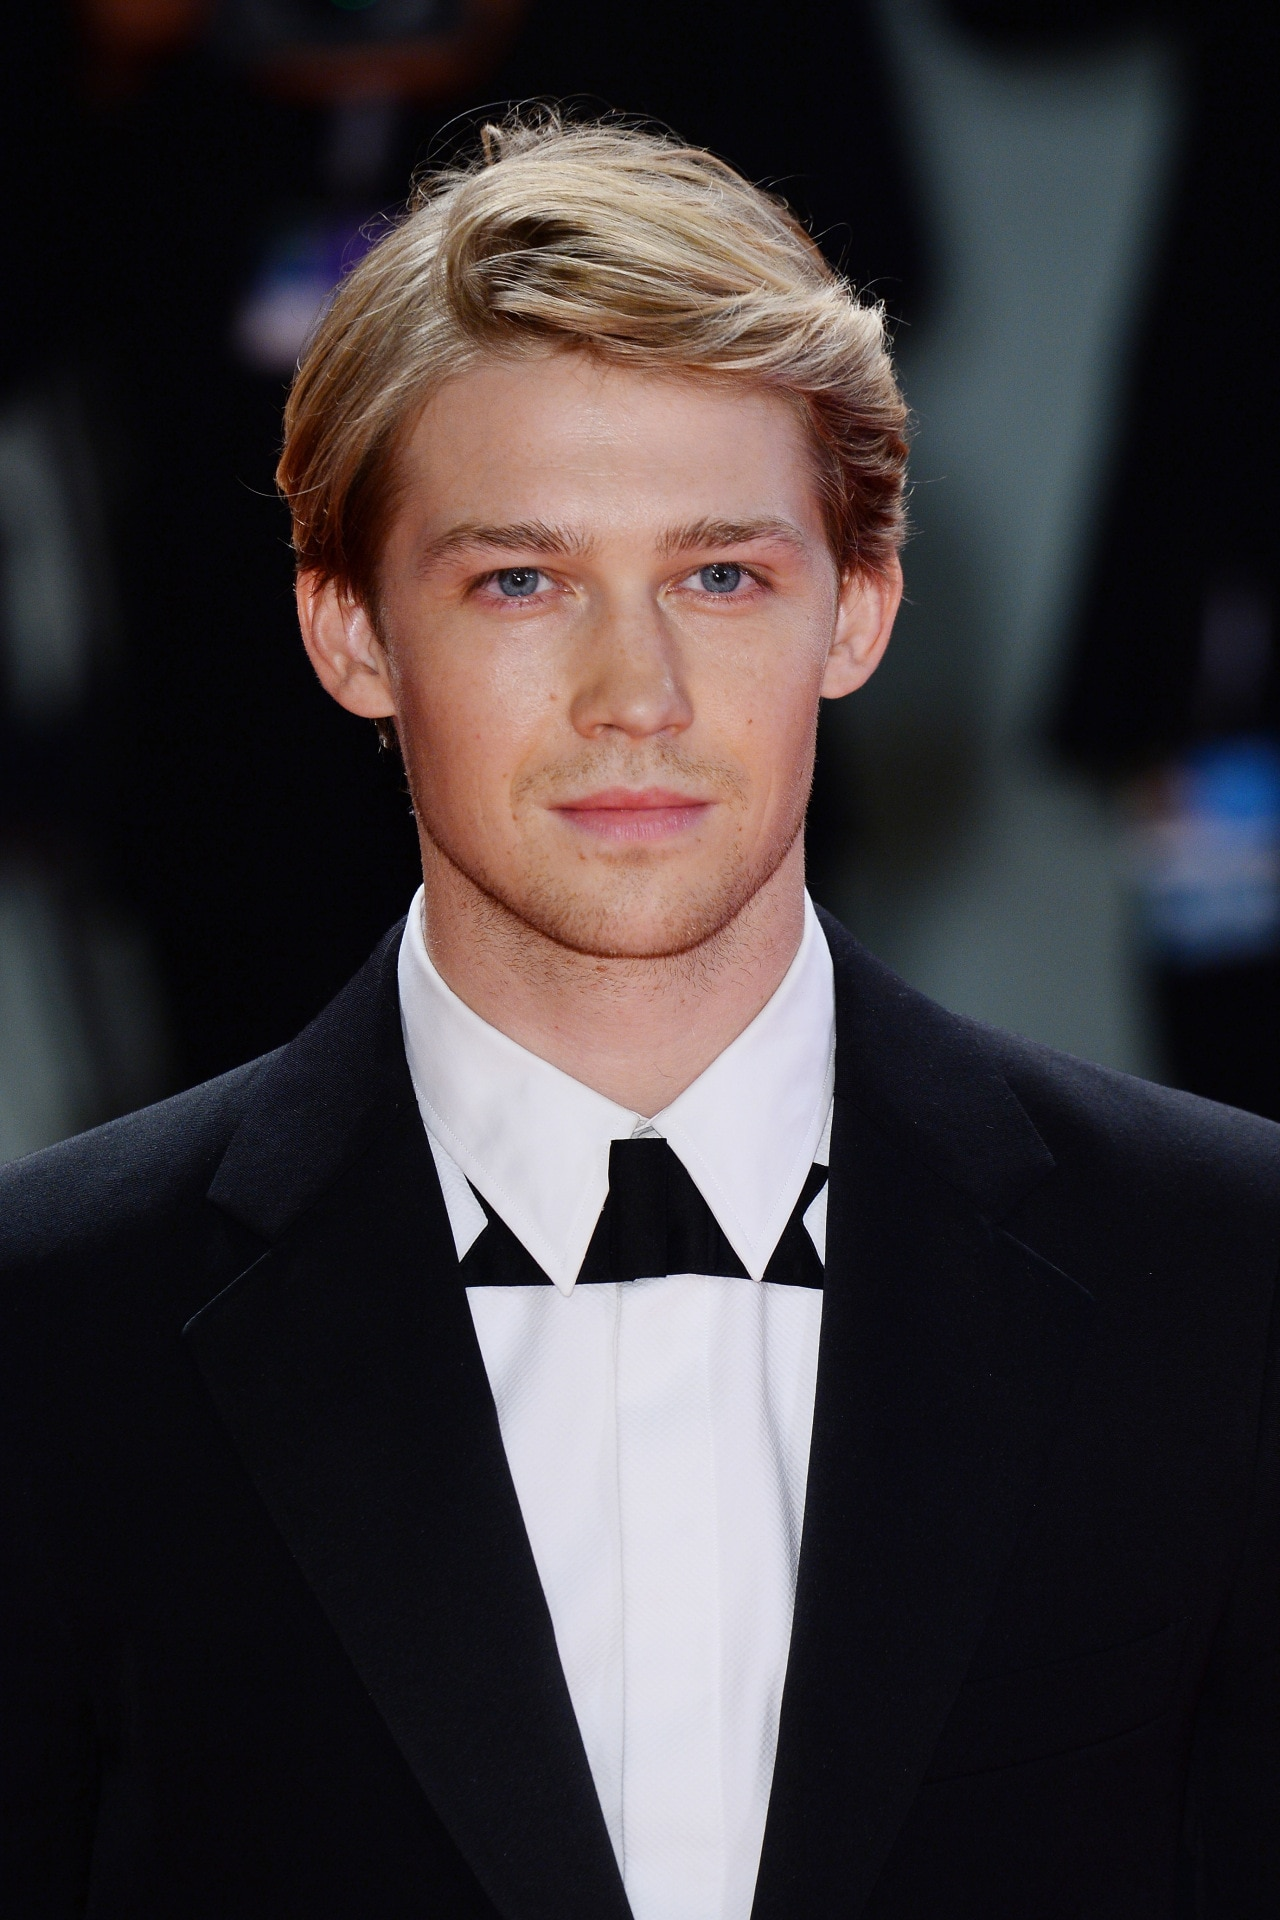 Joe Alwyn breaks his silence on his relationship with Taylor Swift